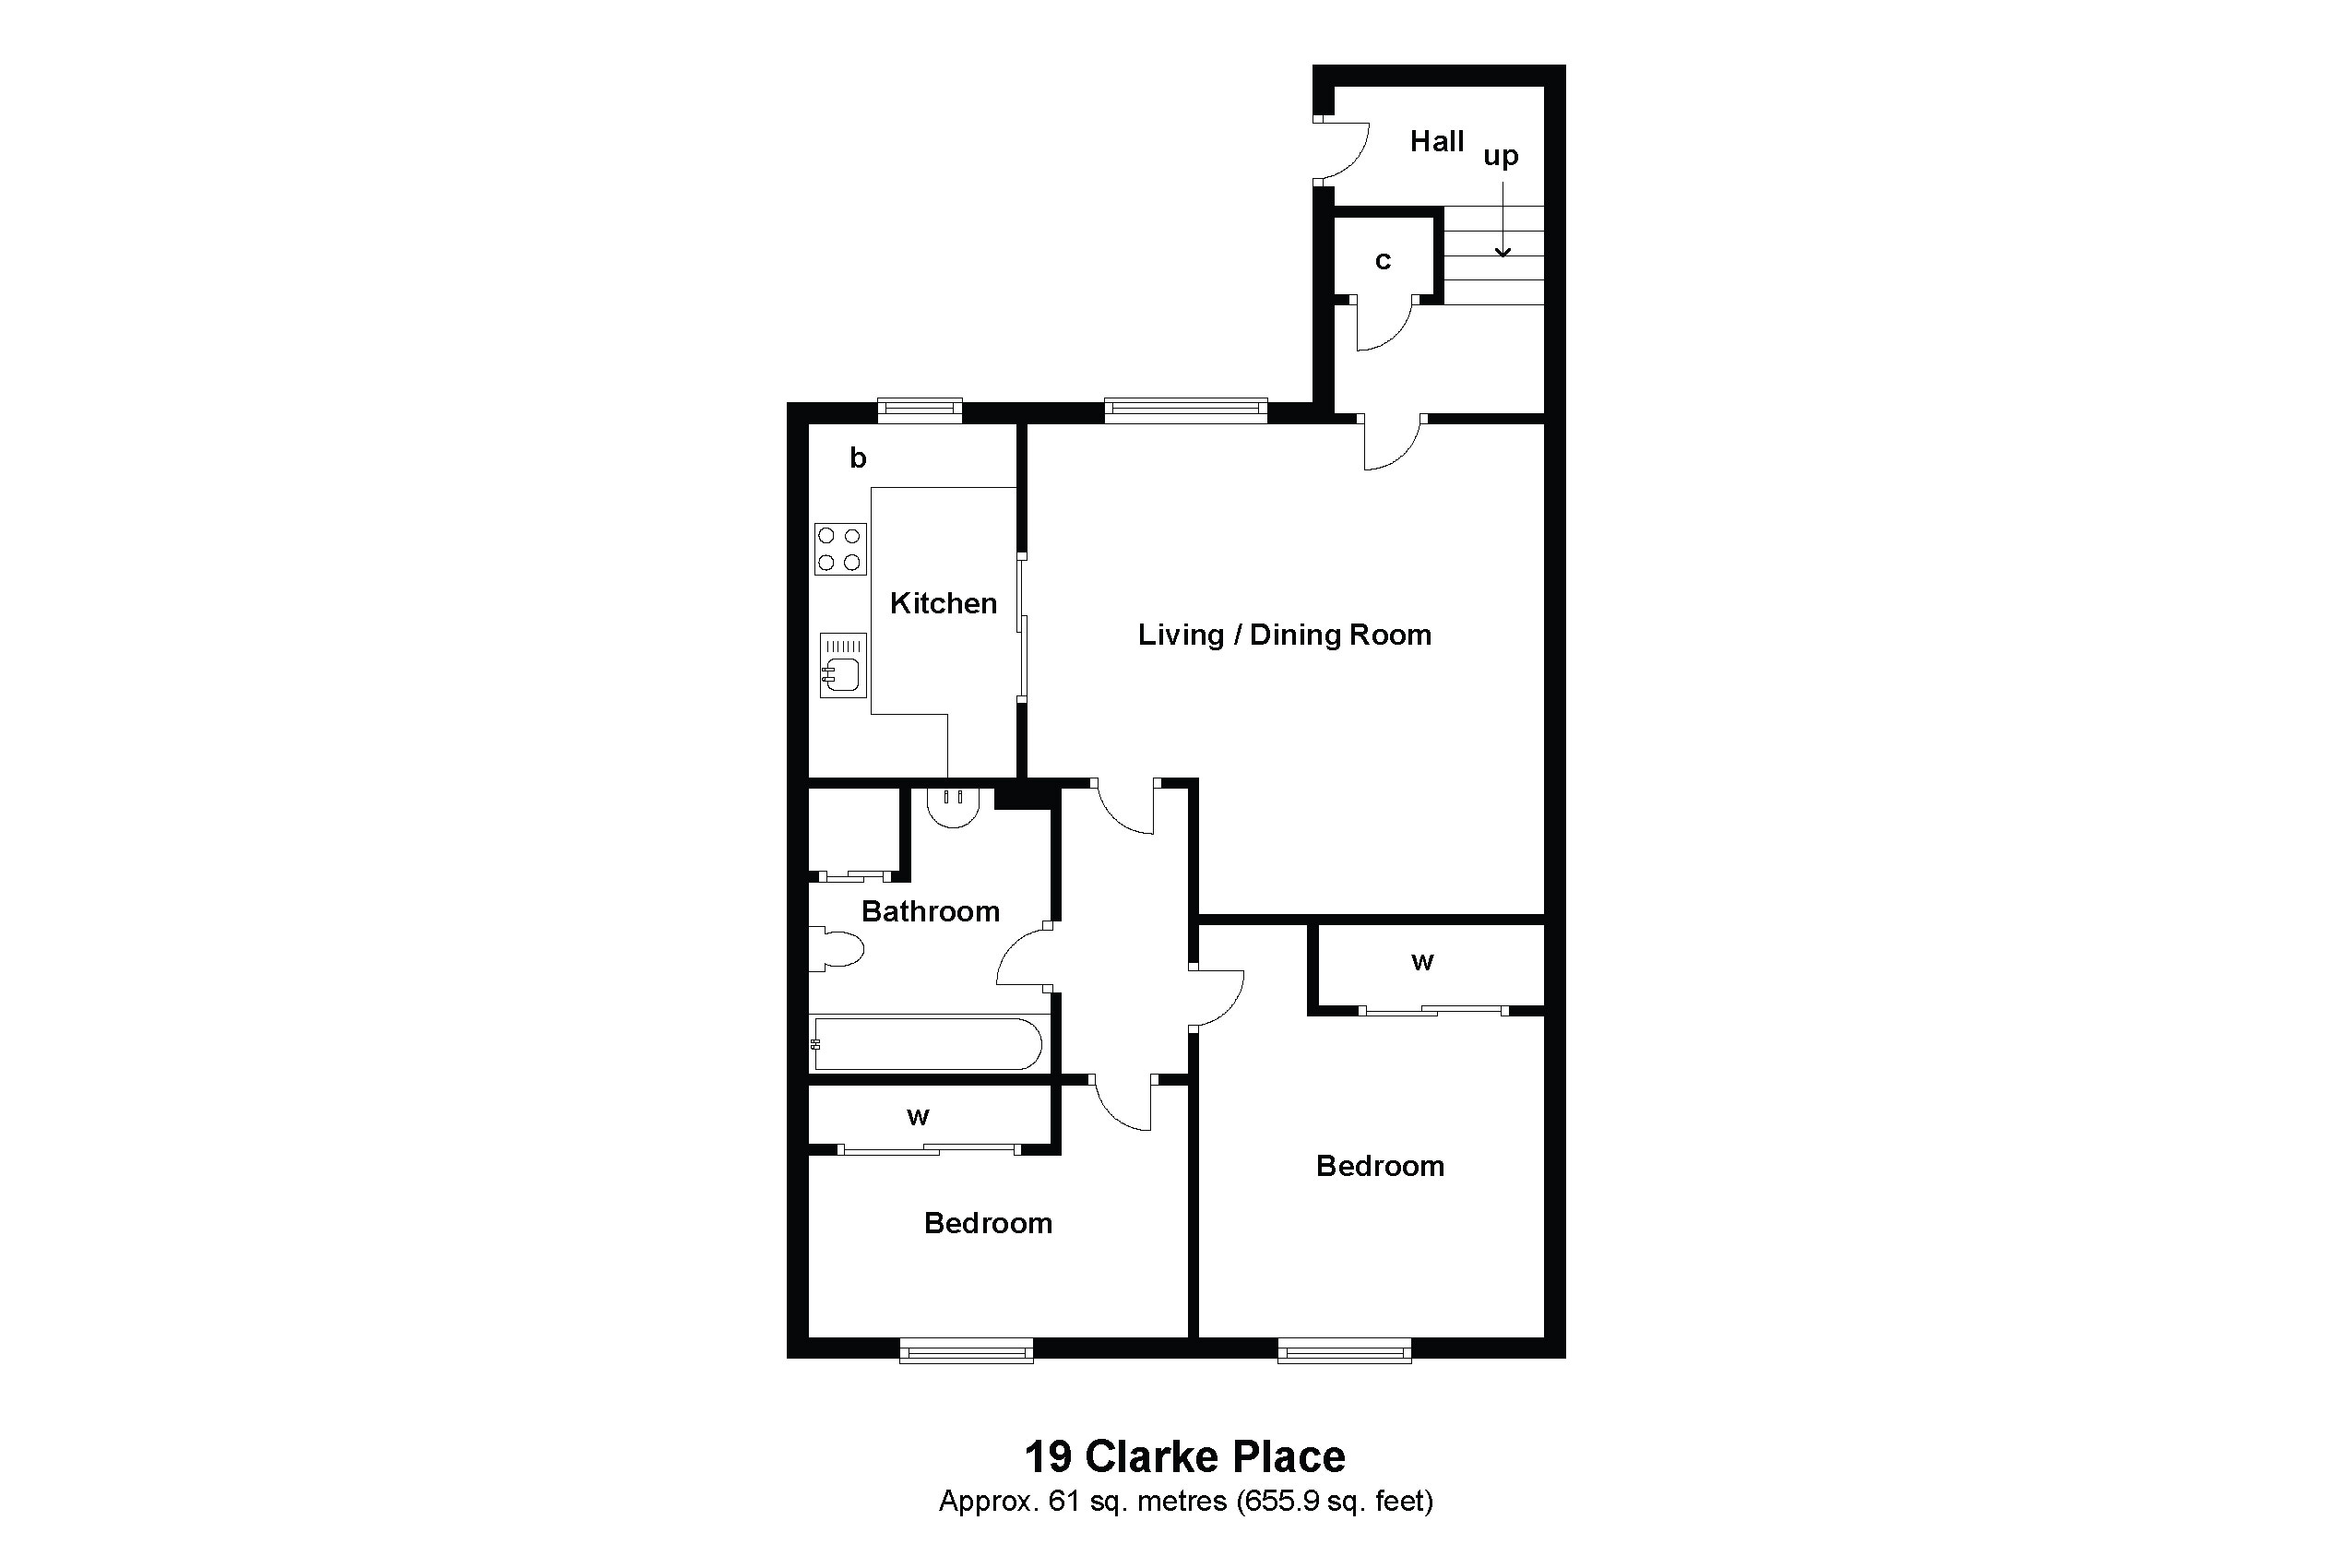 19 Clarke Place Floorplan